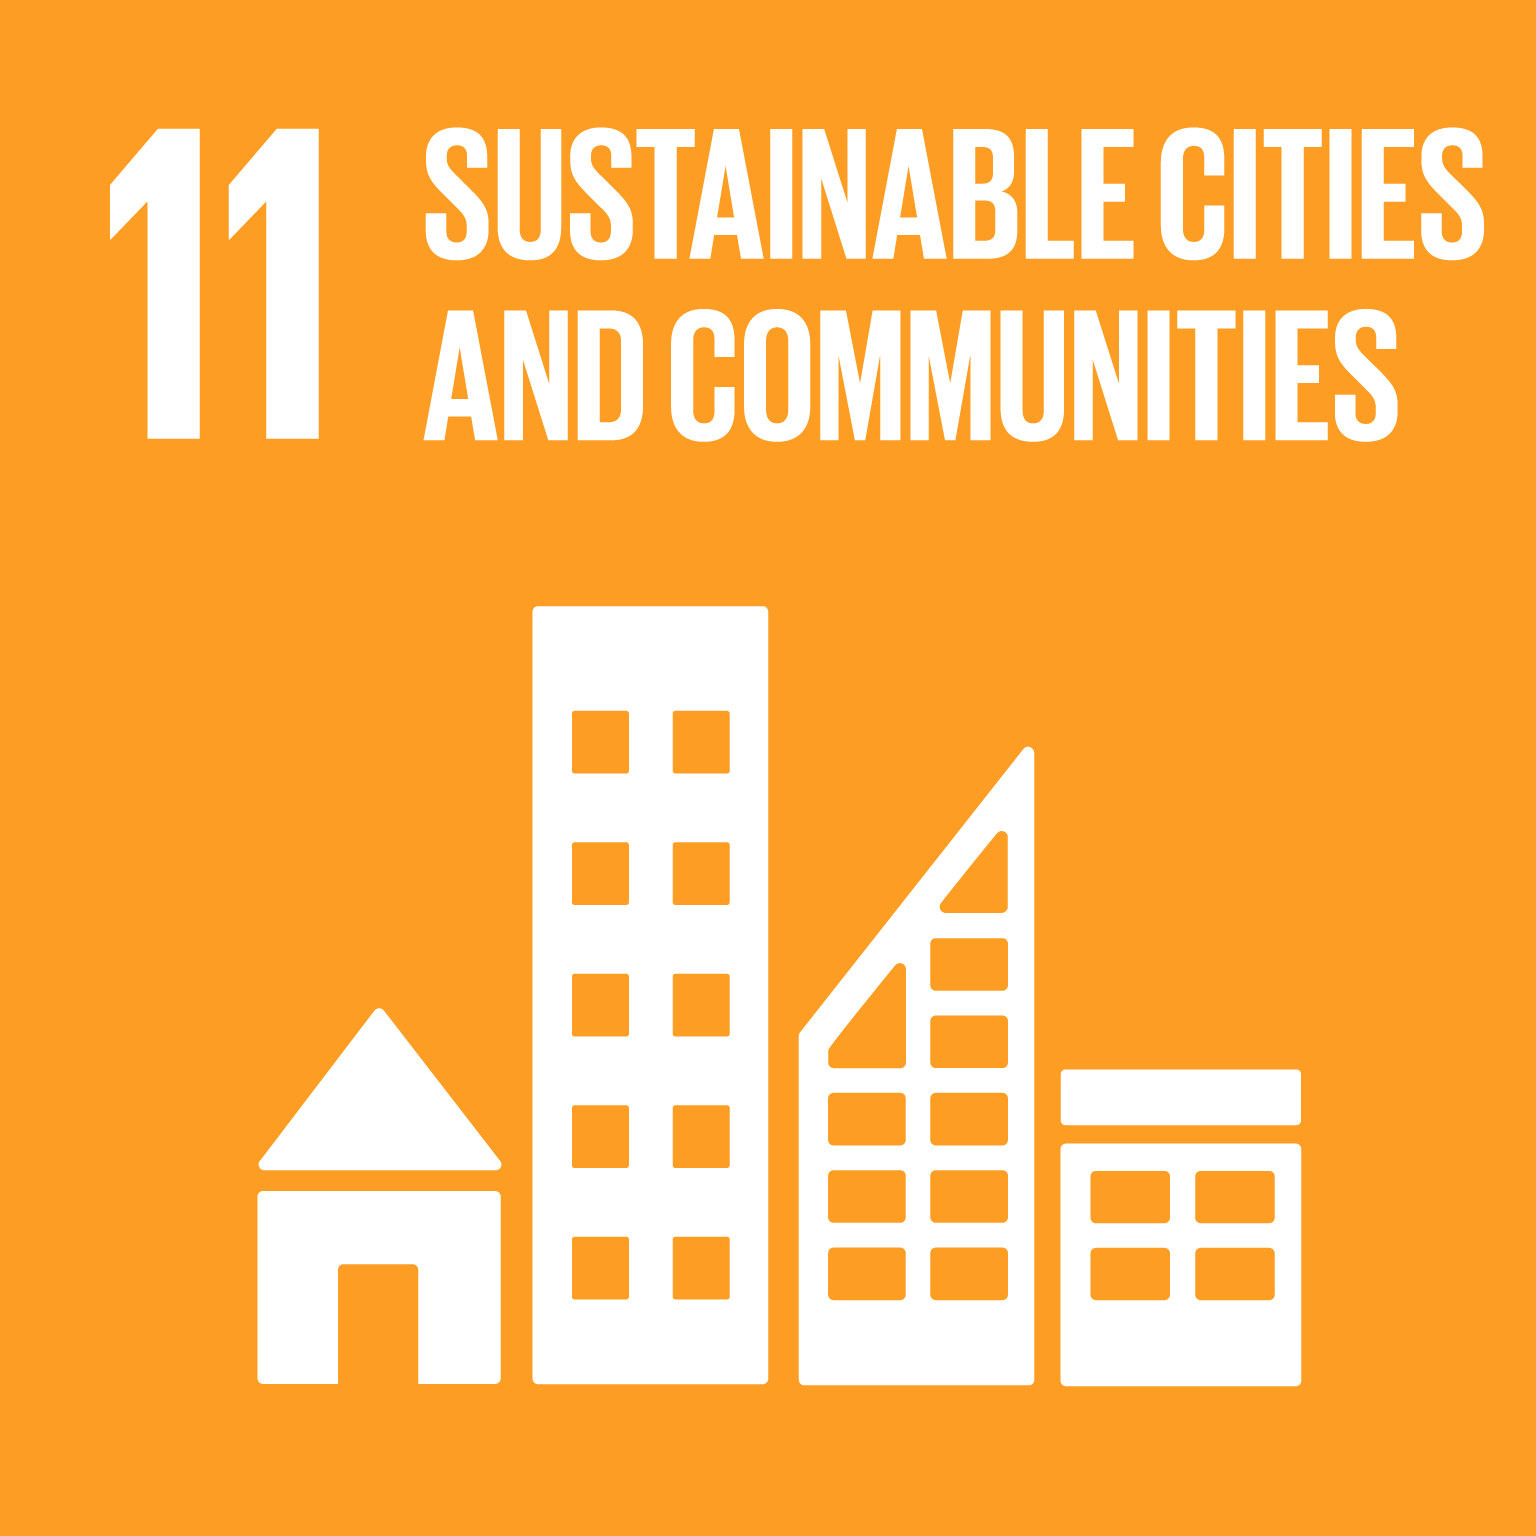 The SDGs icons of SUSTAINABLE CITIES AND COMMUNITIES